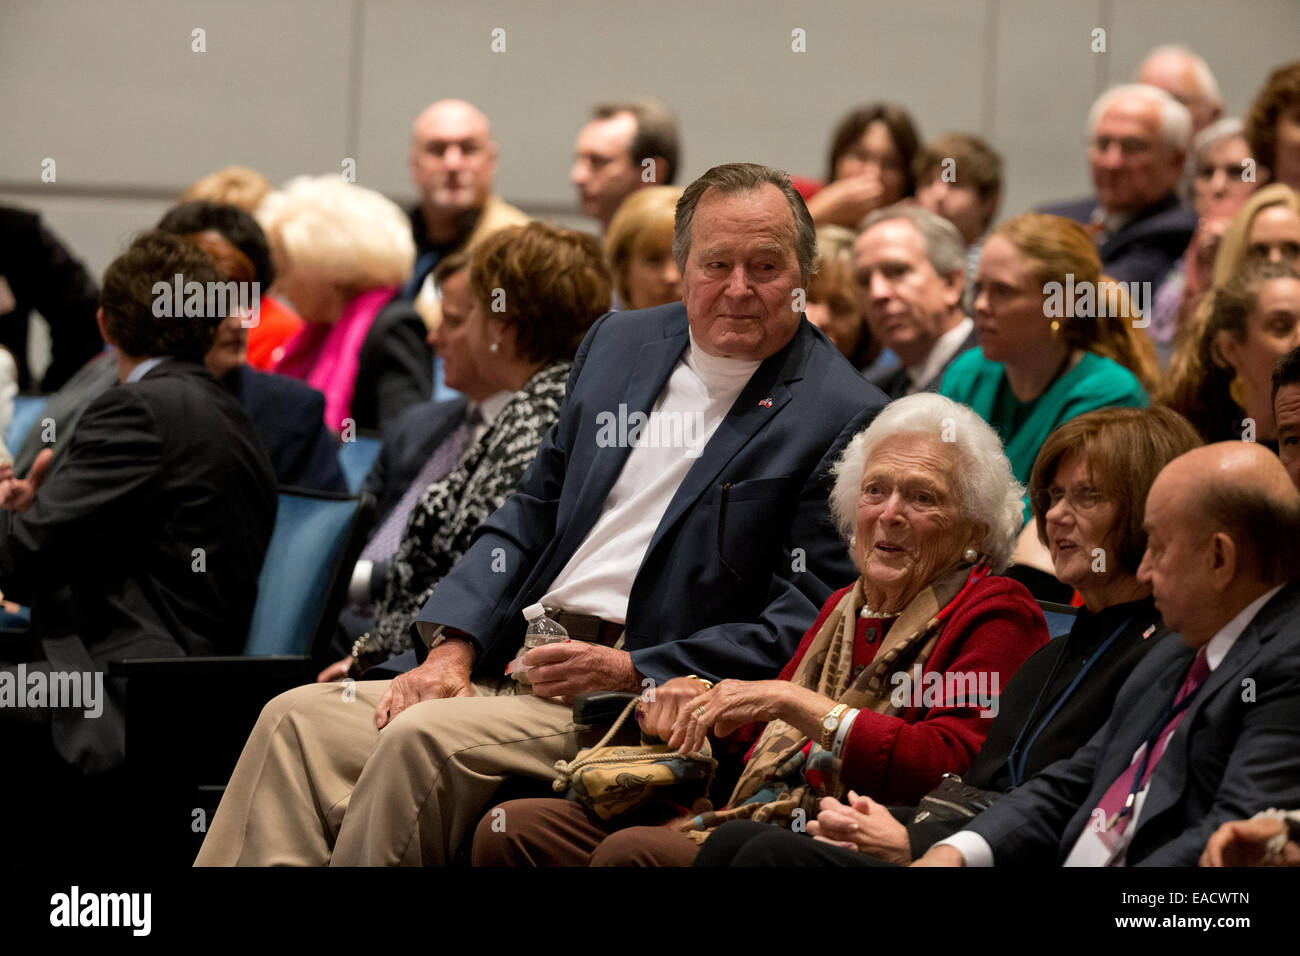 College Station, Texas, USA. 11th November, 2014. Former U.S. President George H. W. Bush listens with his wife - Stock Image